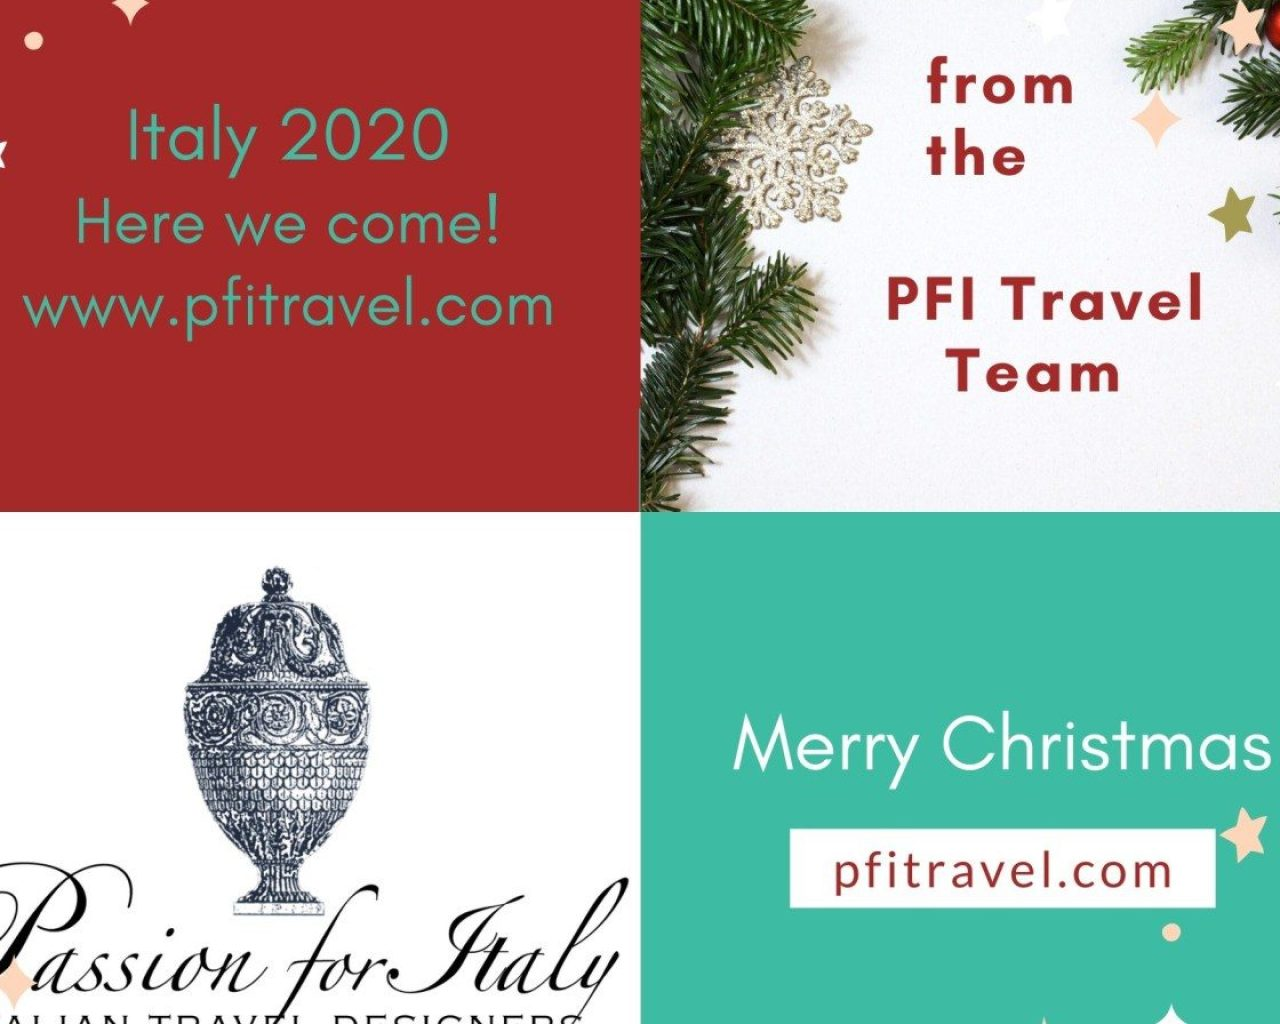 Christmas Message Passion for Italy Travel